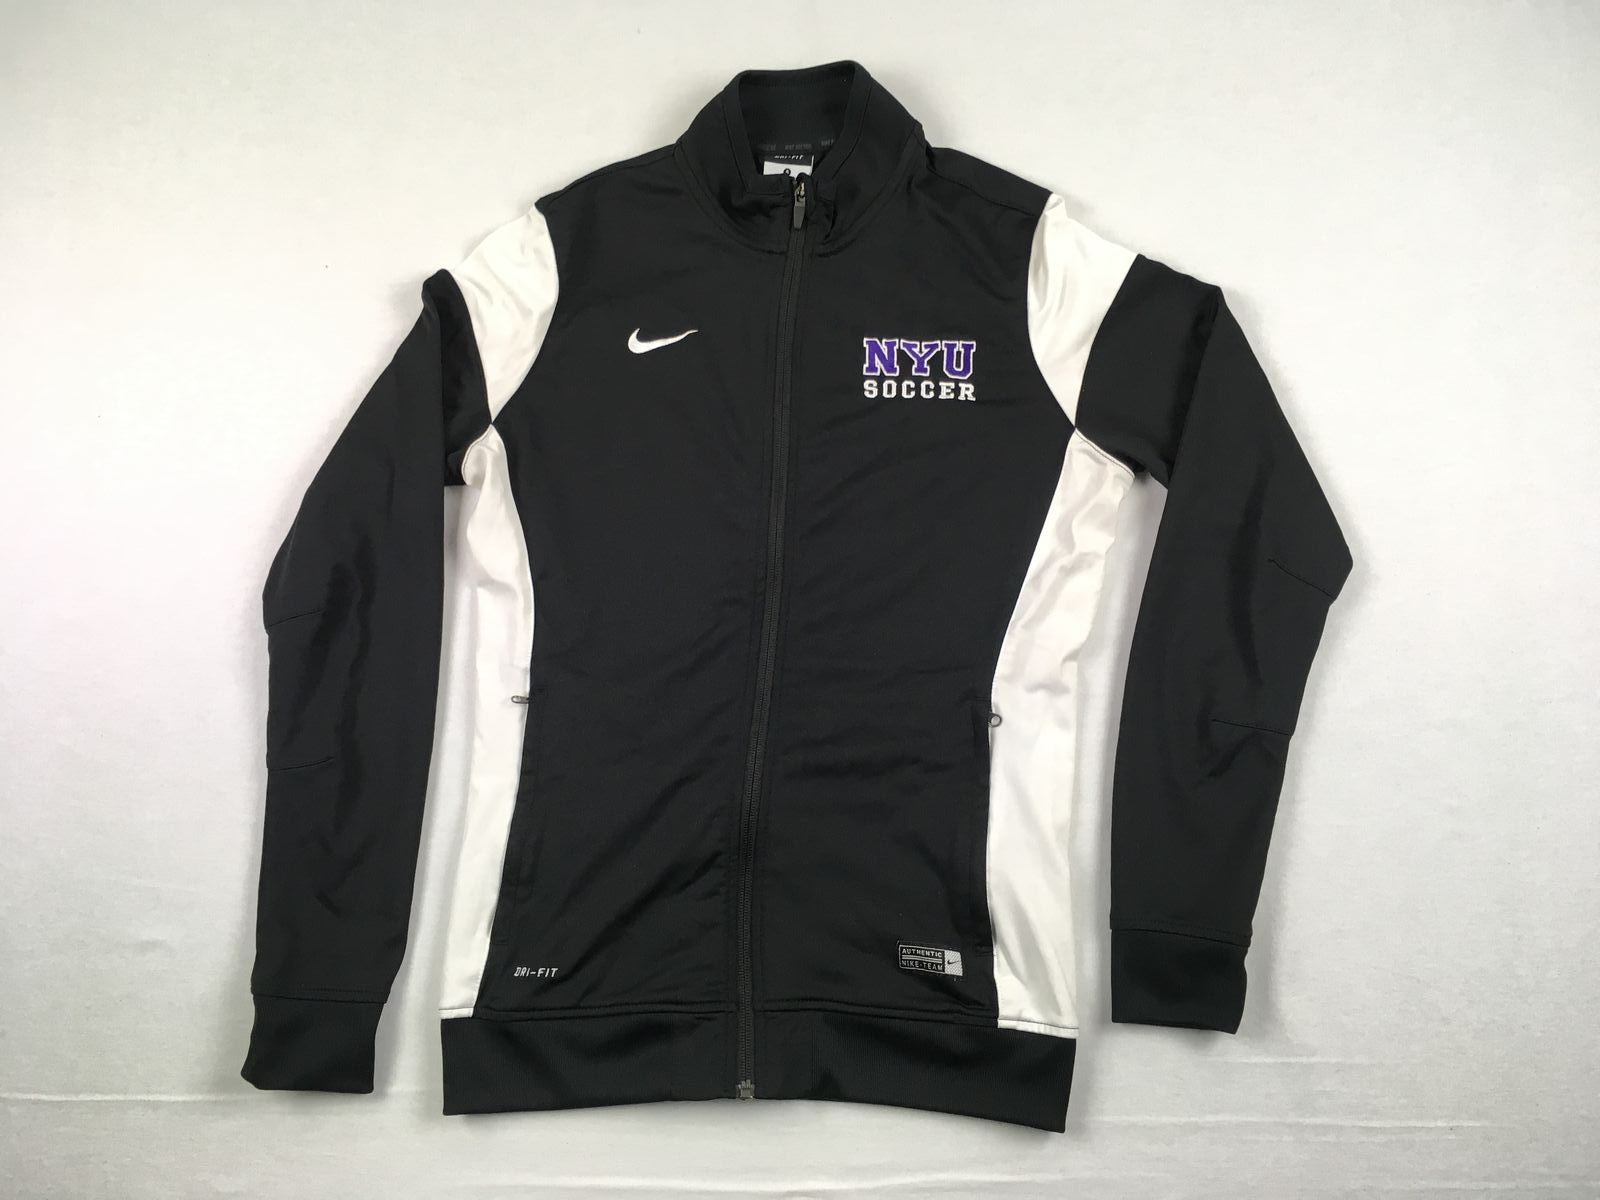 Details about Nike NYU Violets - Black Poly Jacket (Multiple Sizes) - Used.  Listed for charity 601cb1bc4